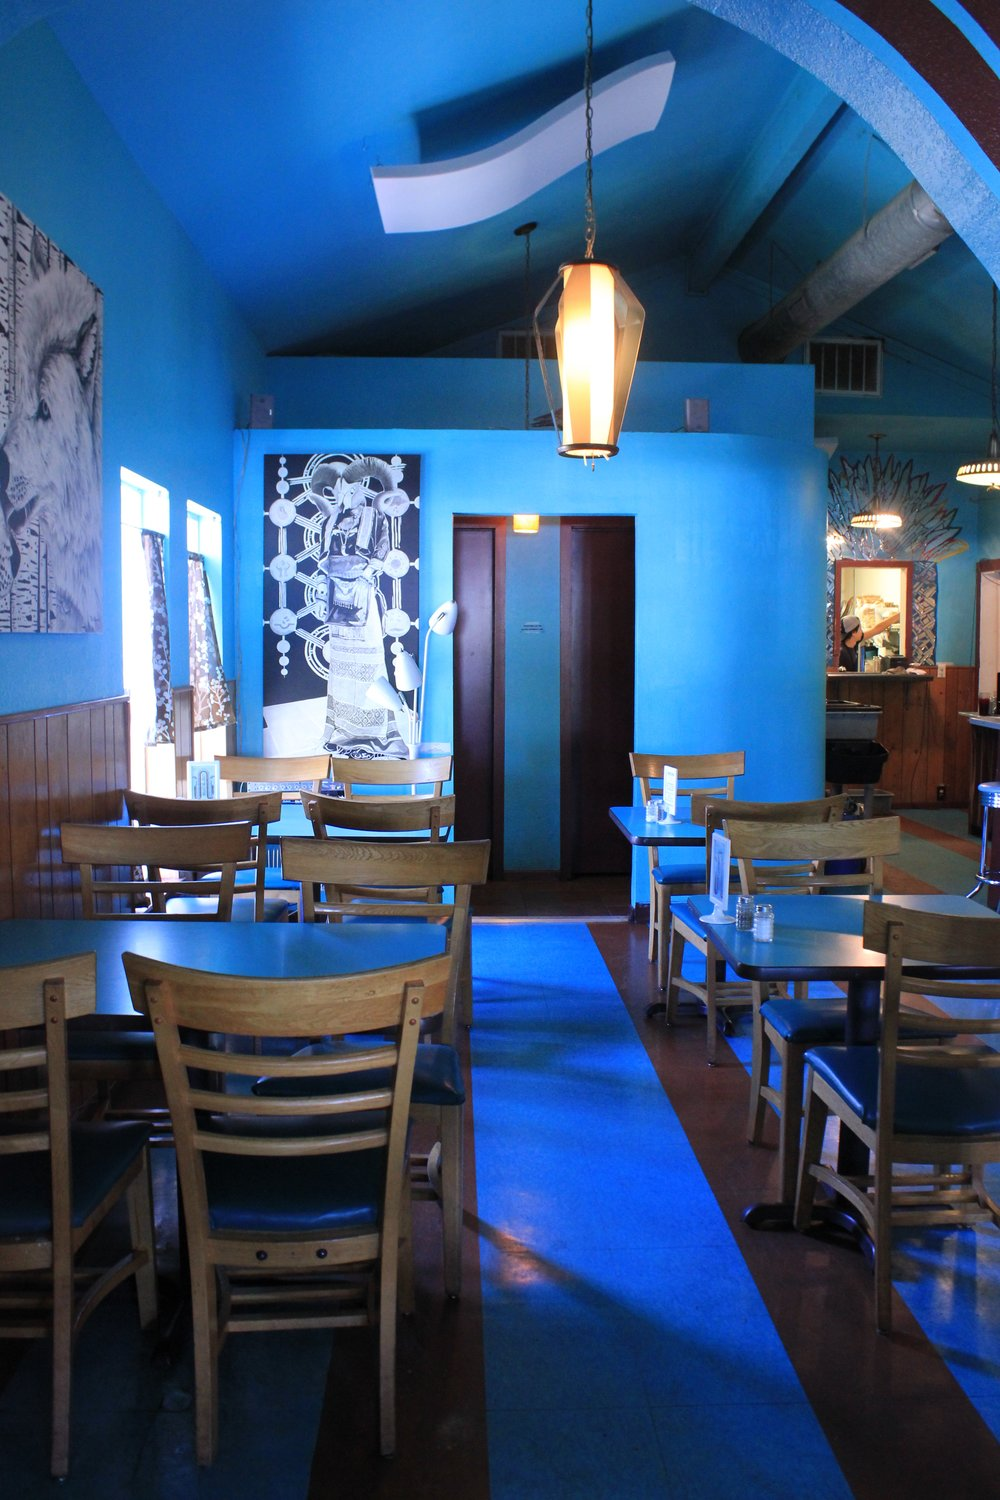 The cool, blue interior makes this spot a great place to hang out and grab some healthy food.